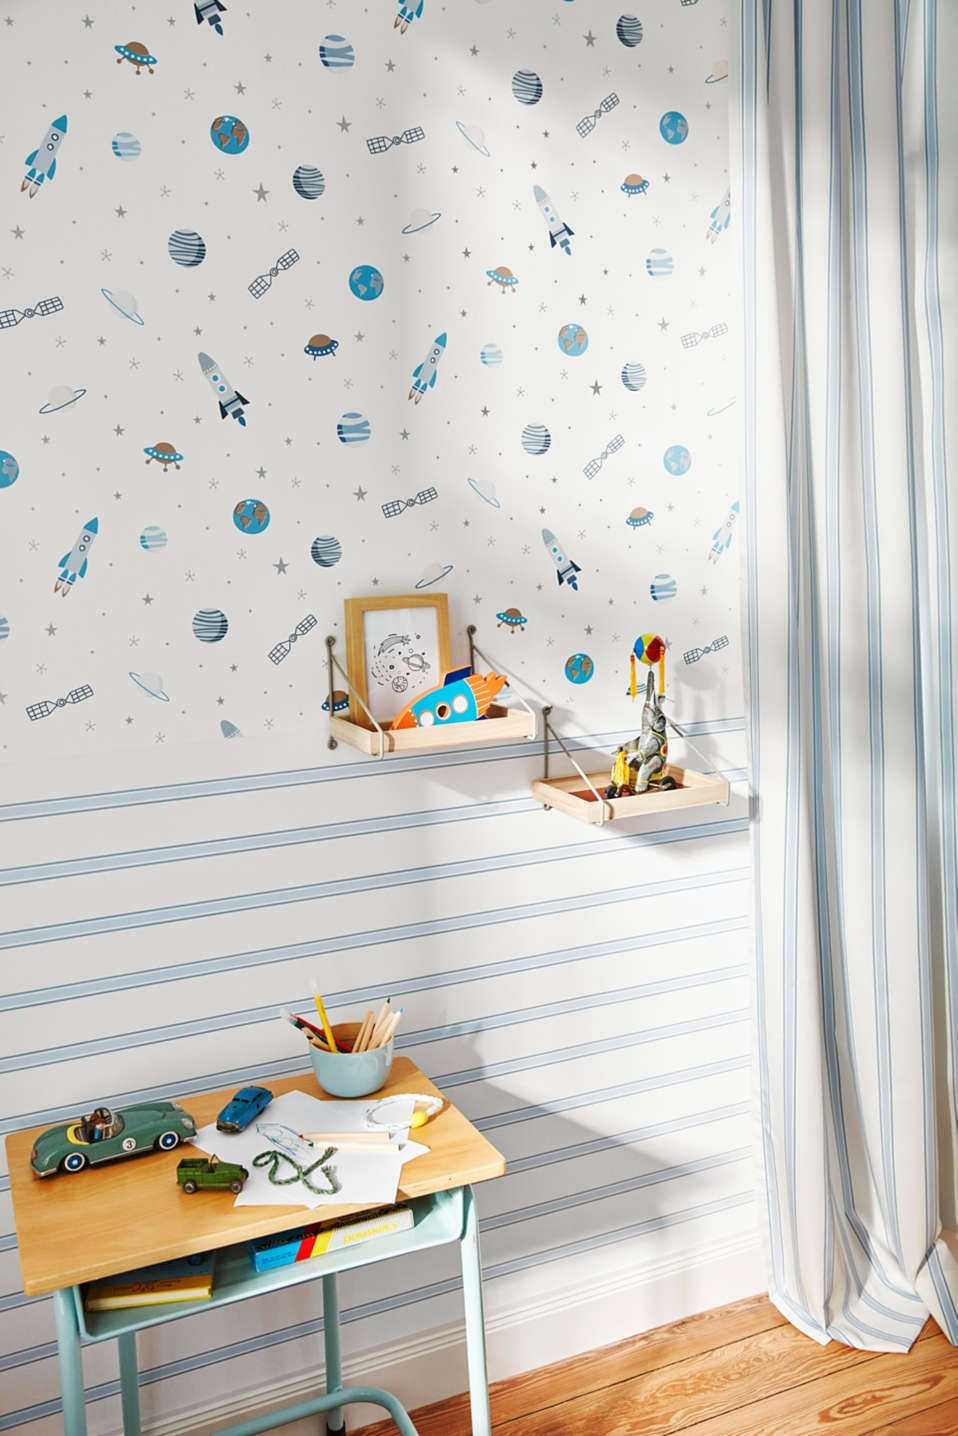 Esprit - Space motif wallpaper for kids